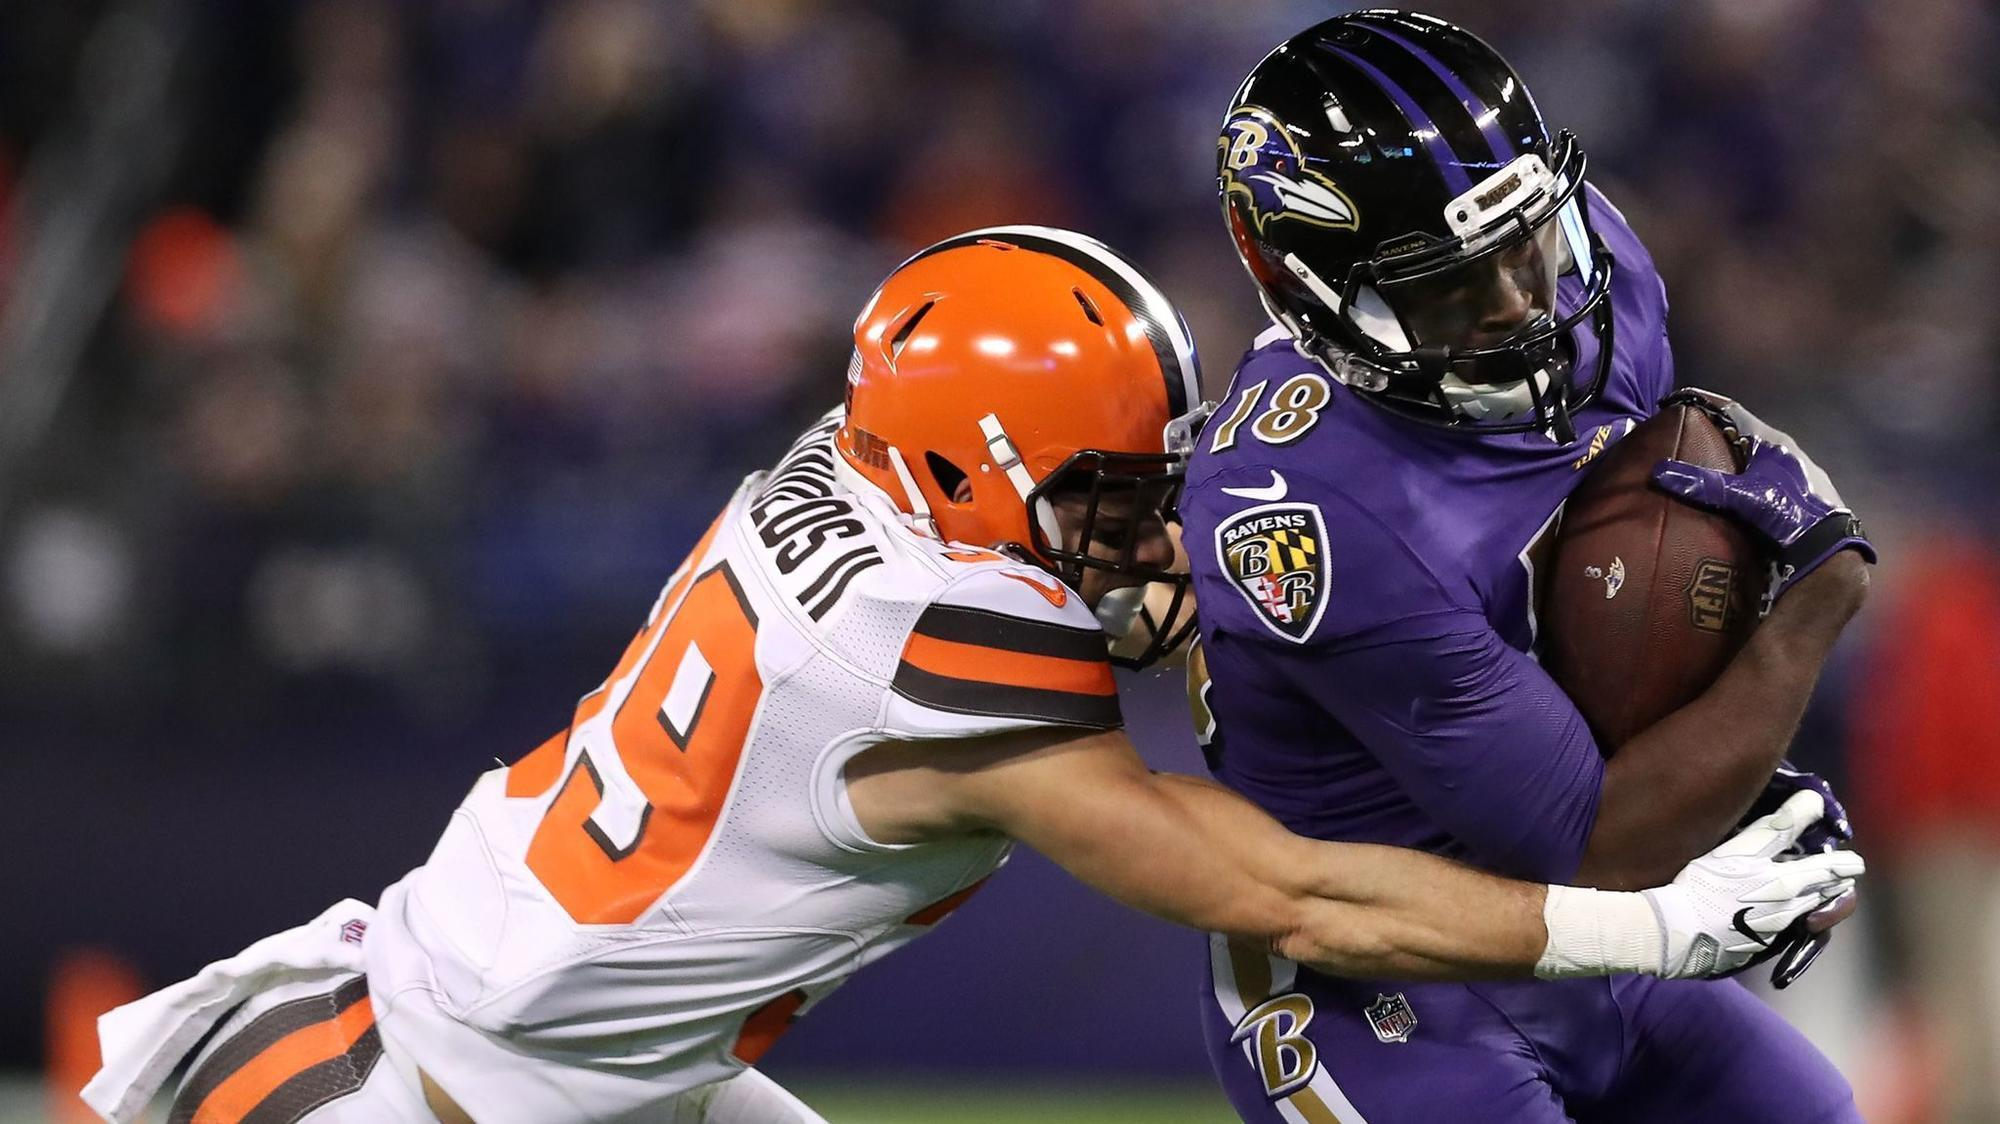 Bs-sp-ravens-browns-tv-stream-time-kickoff-20171118